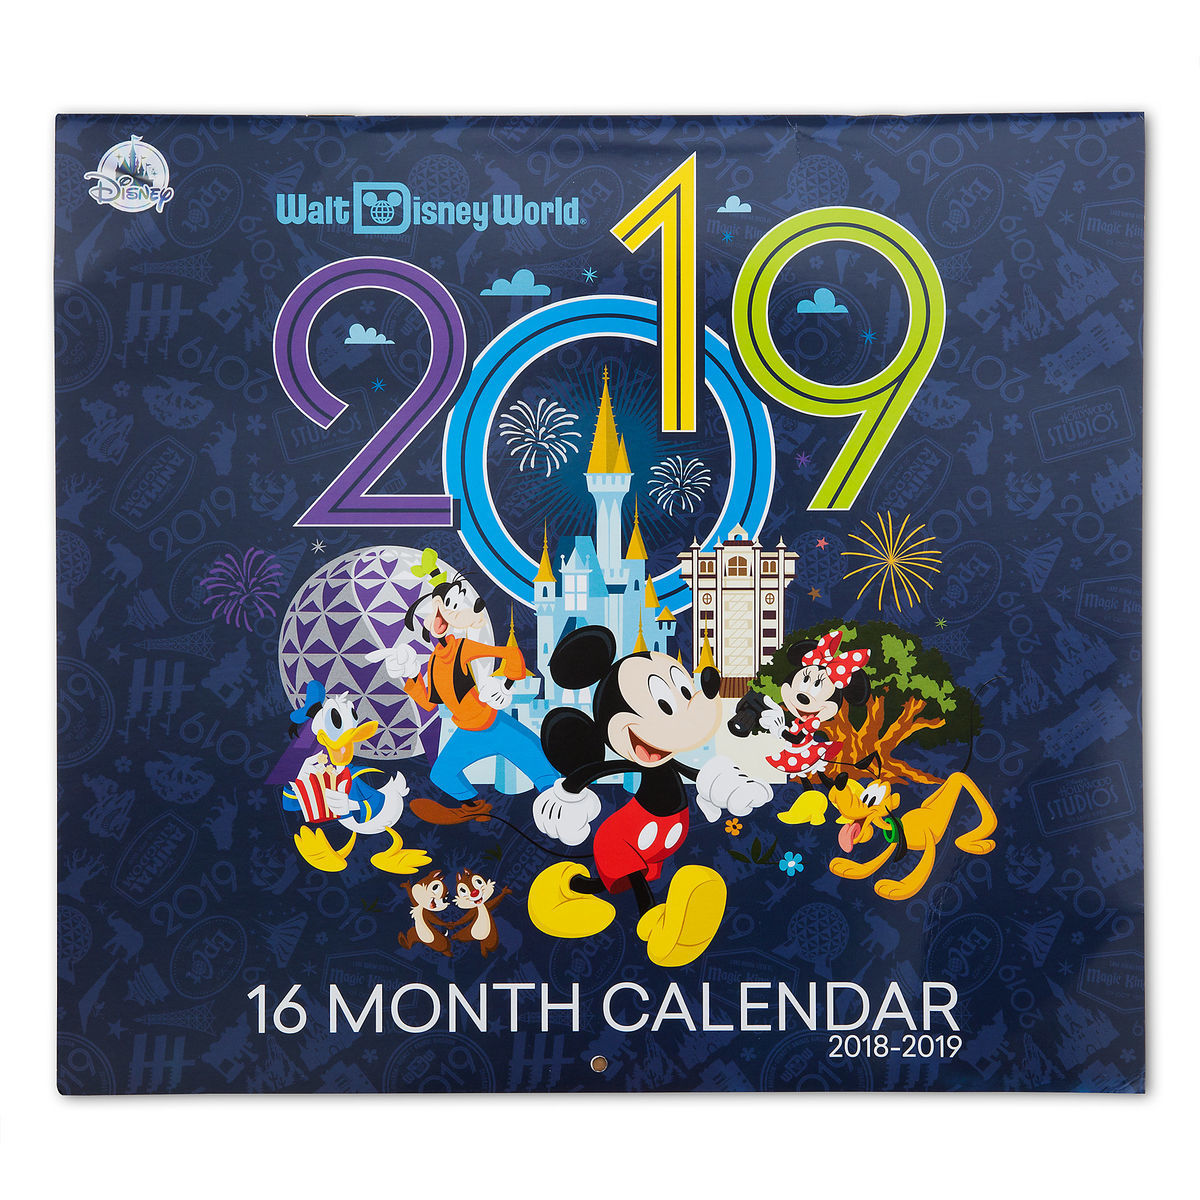 966ae331ee5 Product Image of Walt Disney World 16 Month Calendar 2018-2019   1